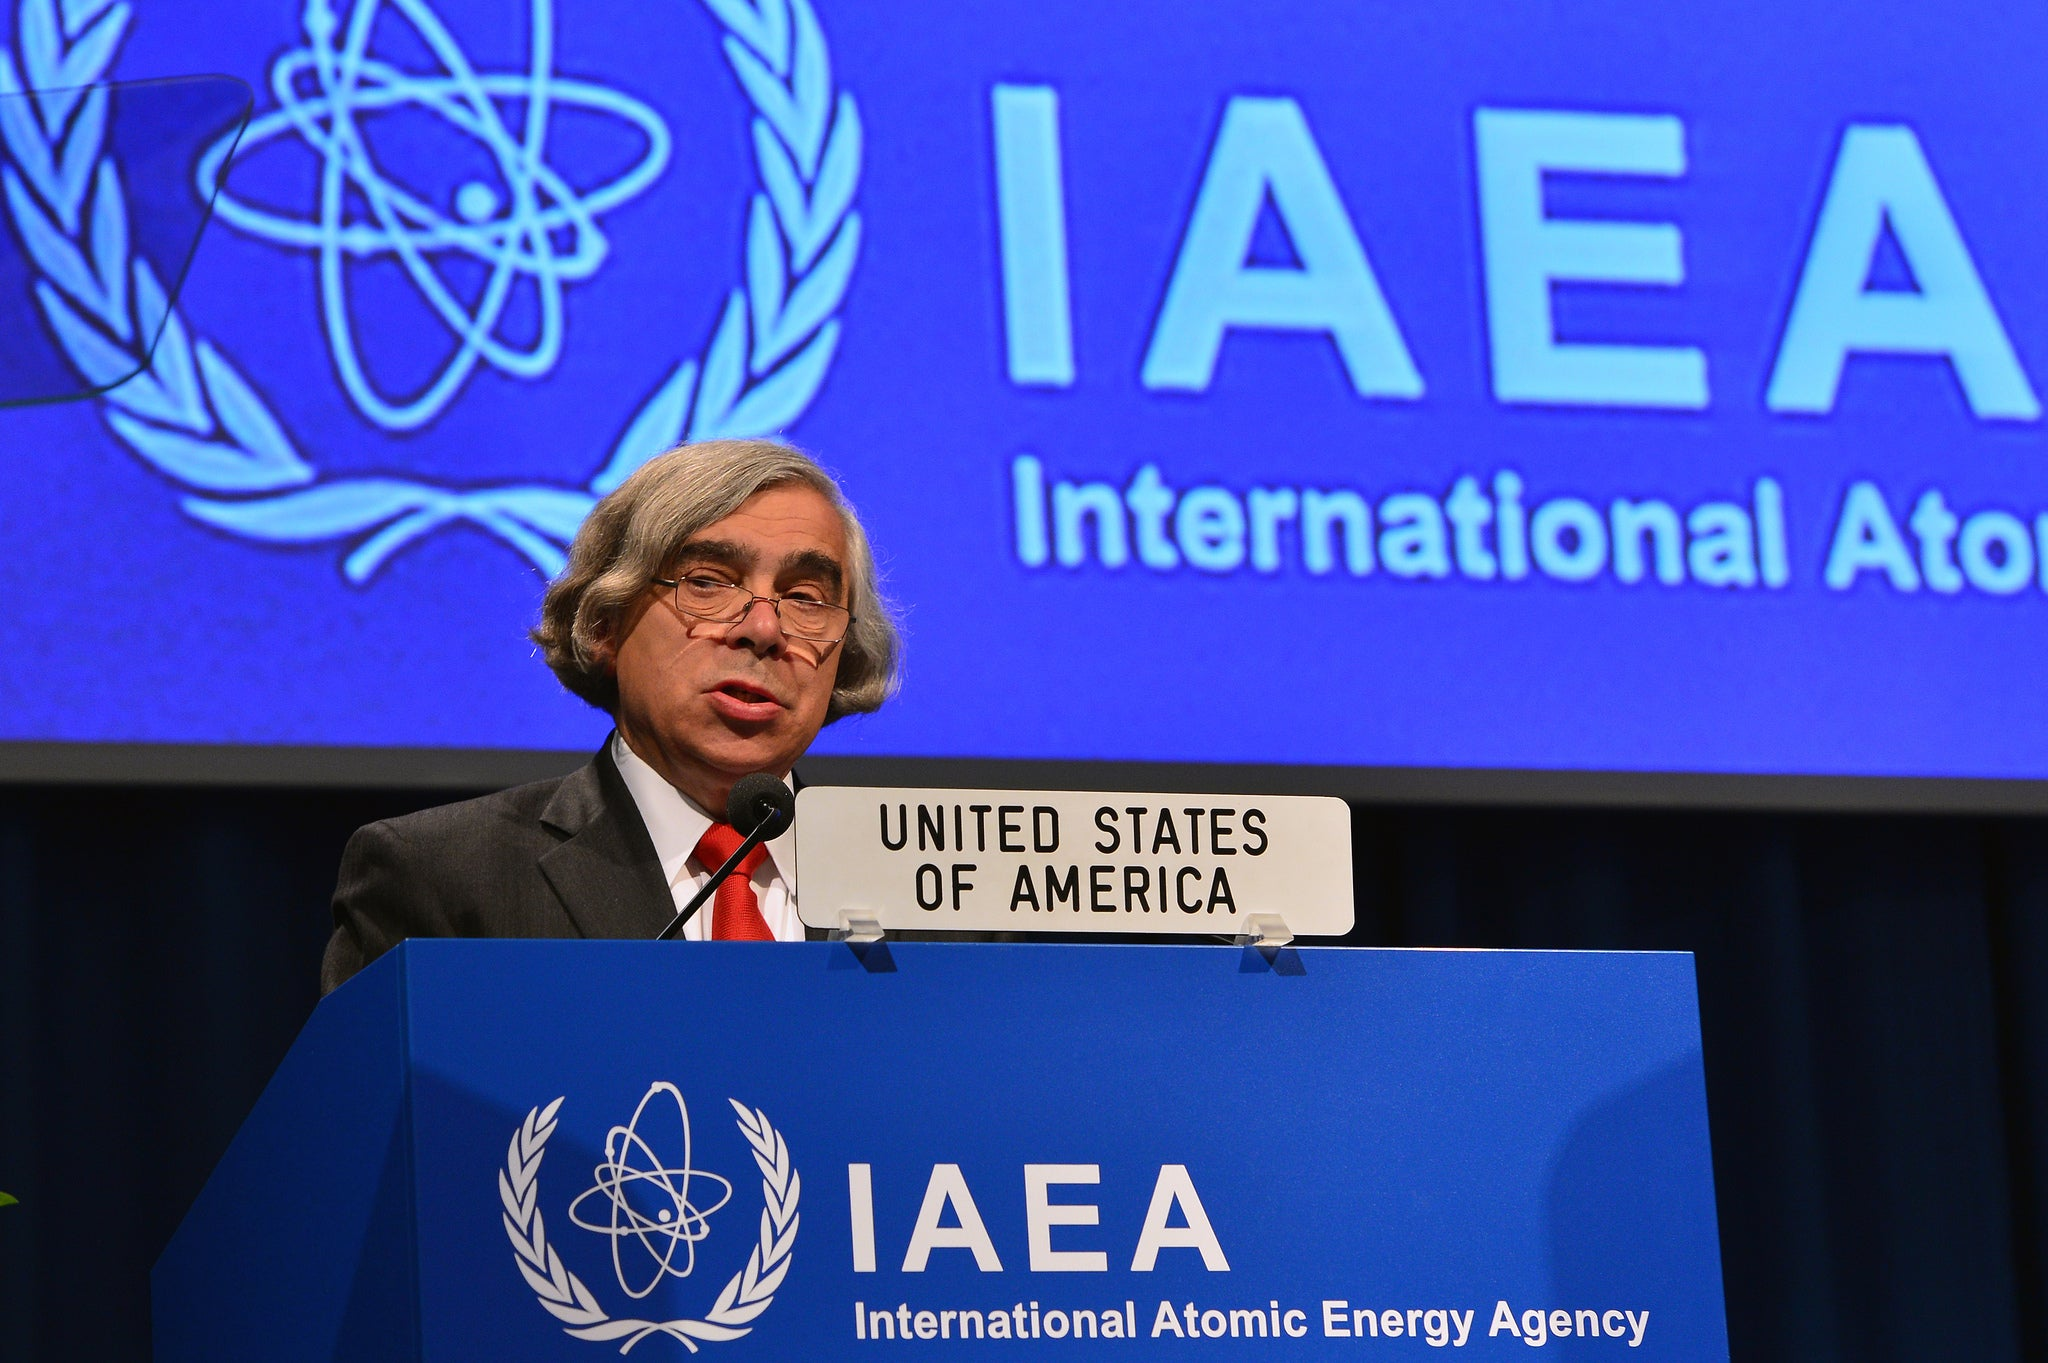 U.S. Energy Secretary Ernest Moniz Explains The Science Of The Iran Deal